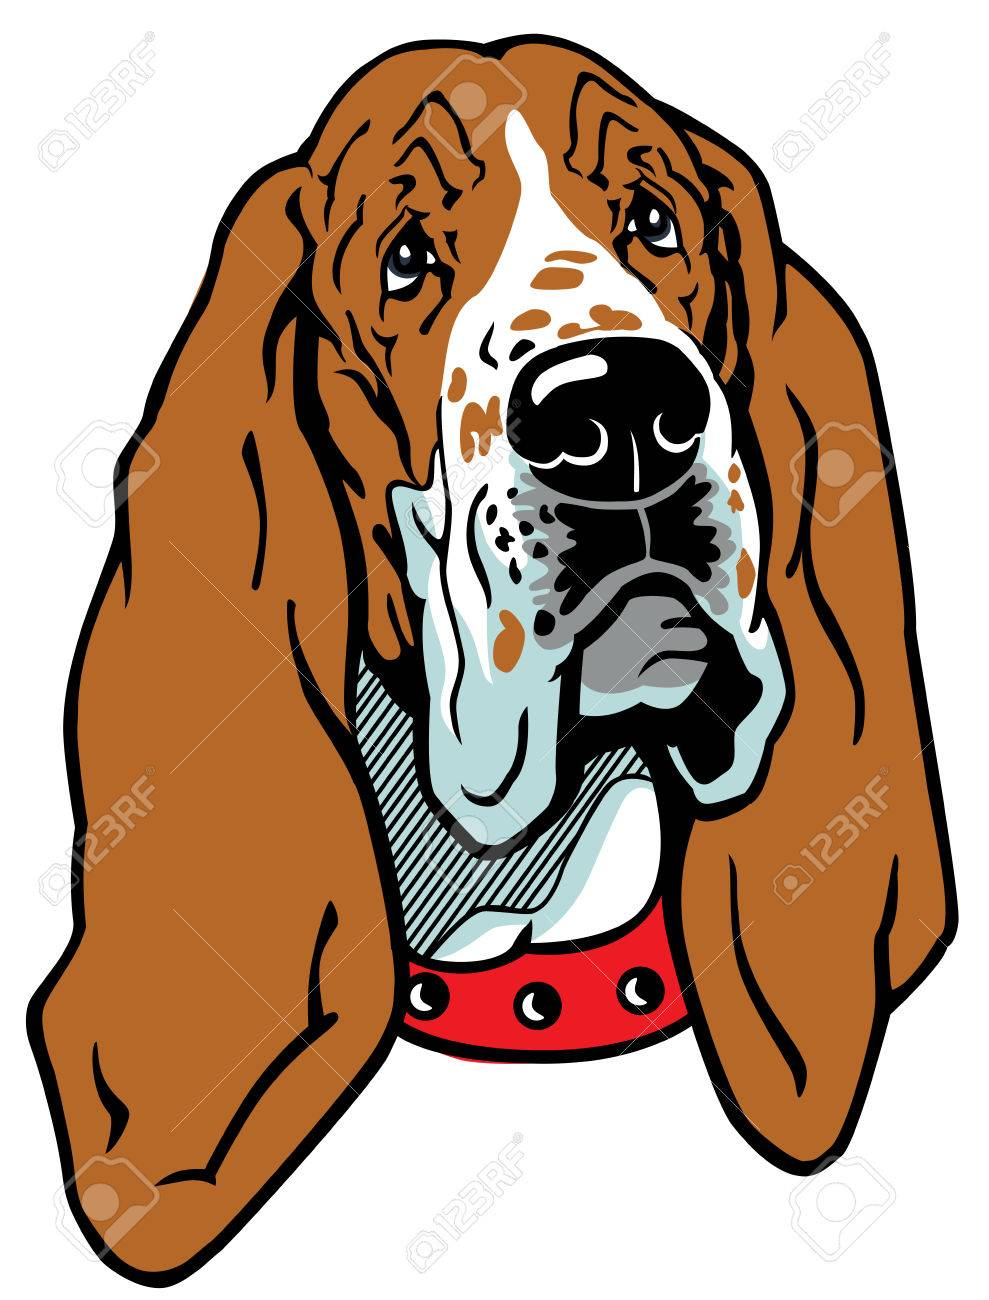 989x1300 907 Basset Hound Stock Illustrations, Cliparts And Royalty Free